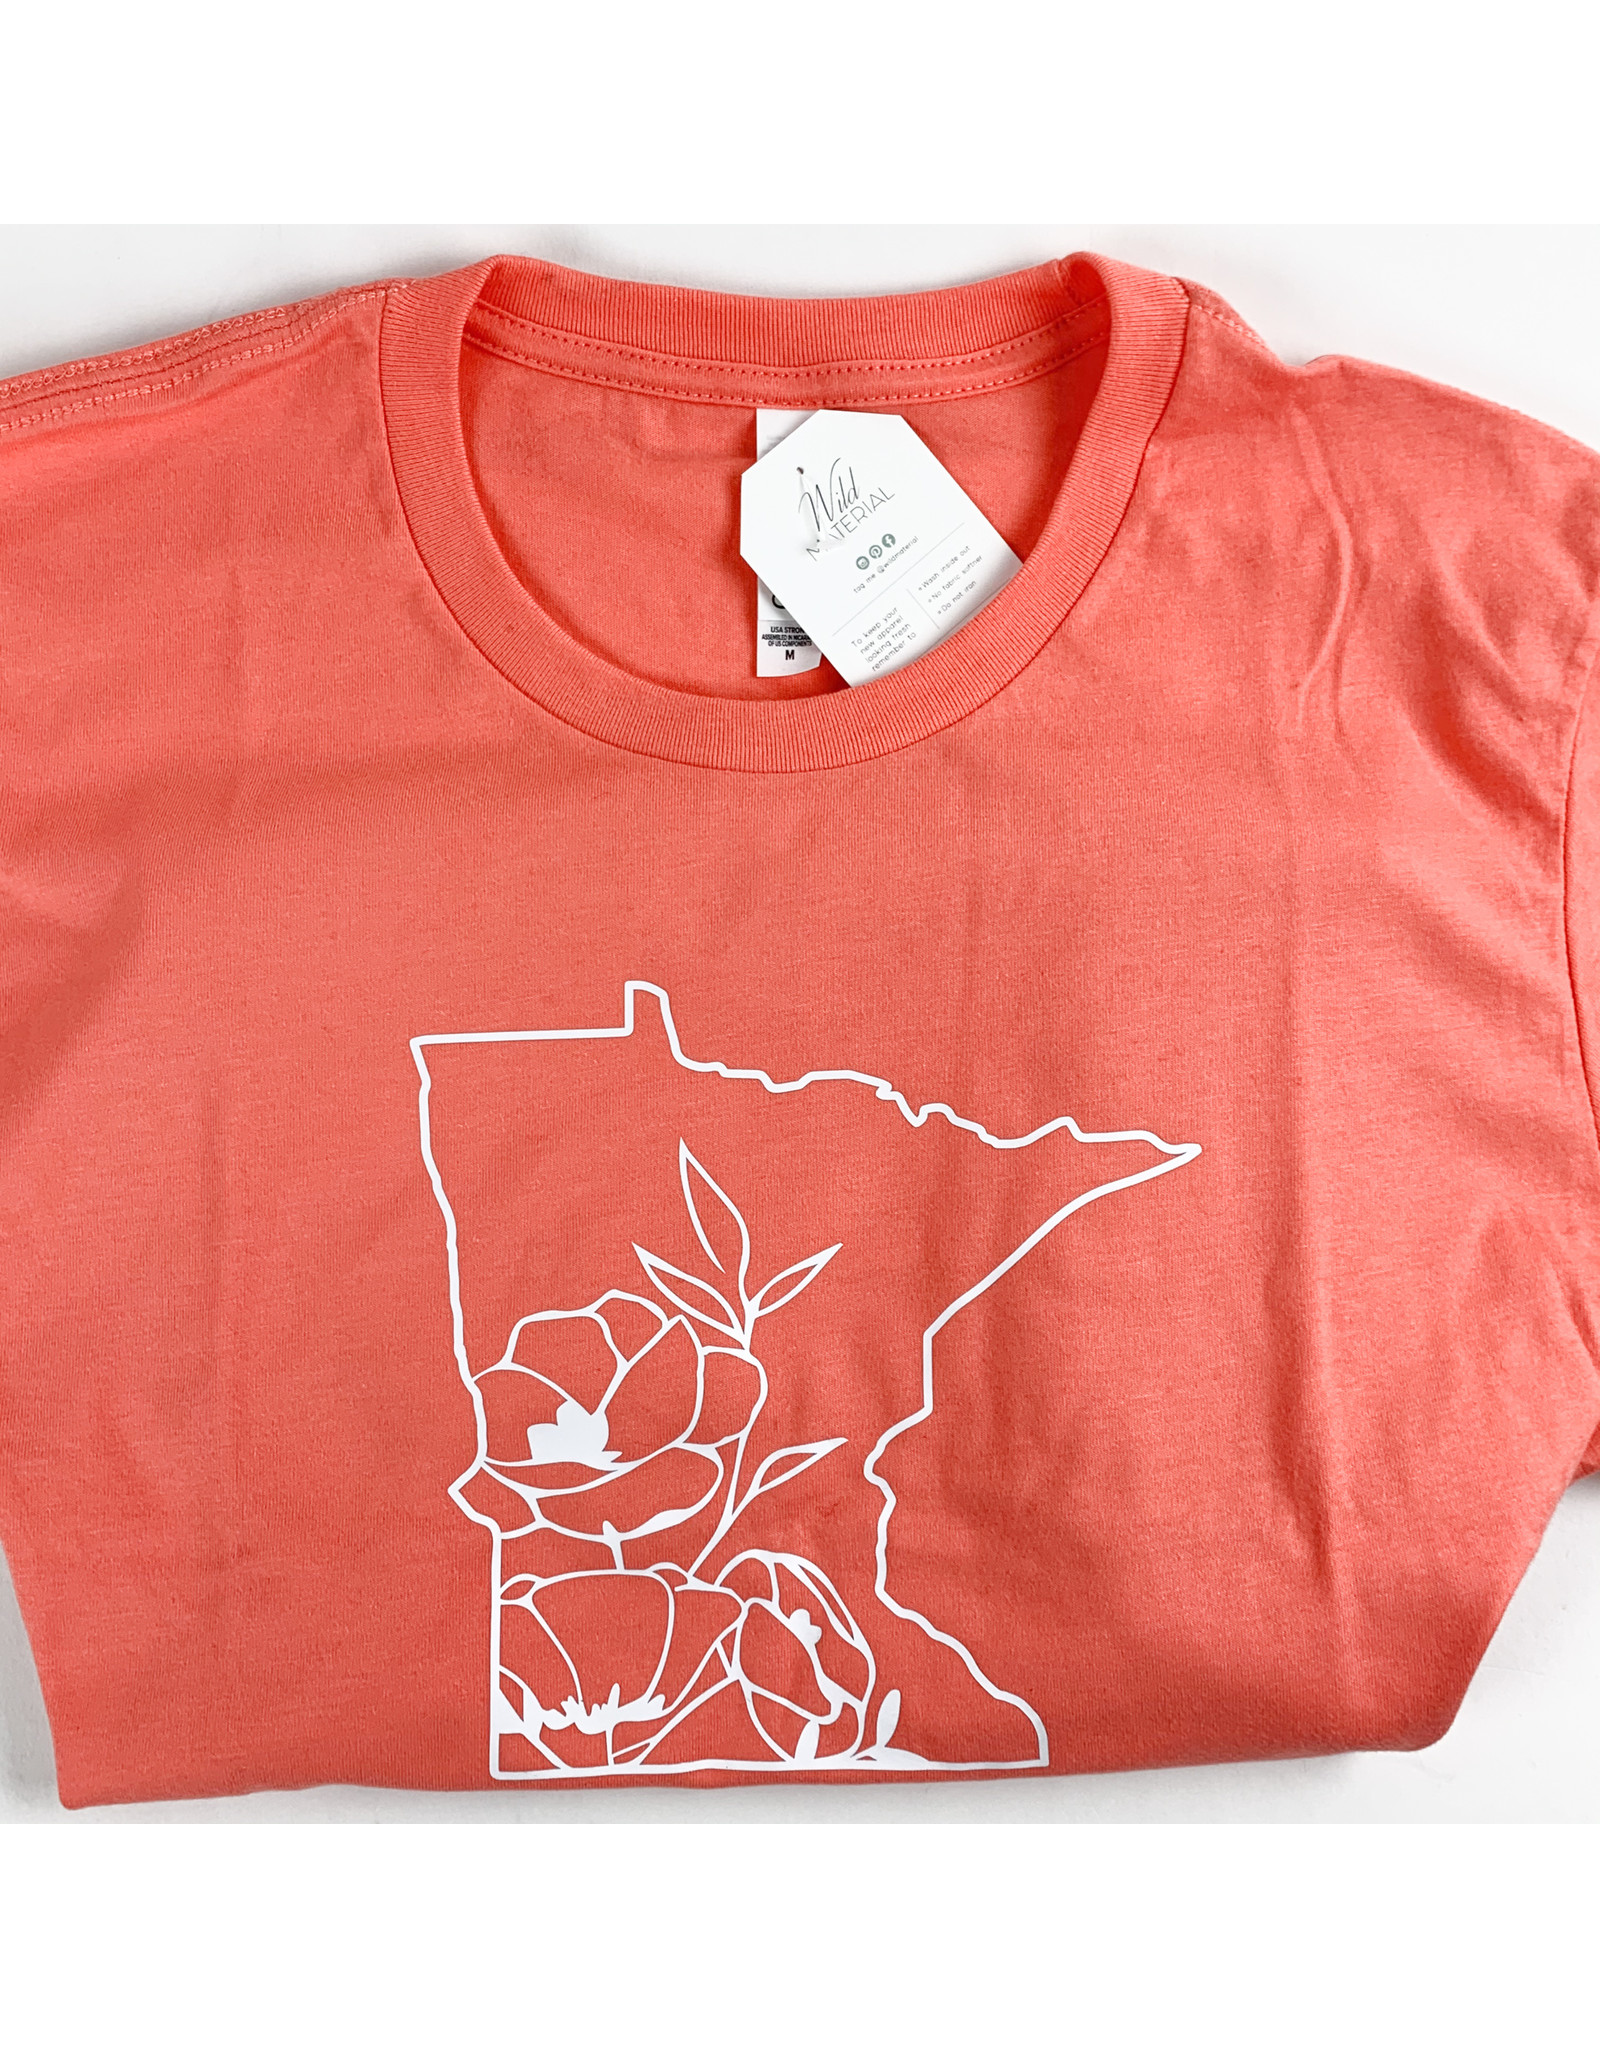 Wild Material Floral MN Tee Shirt